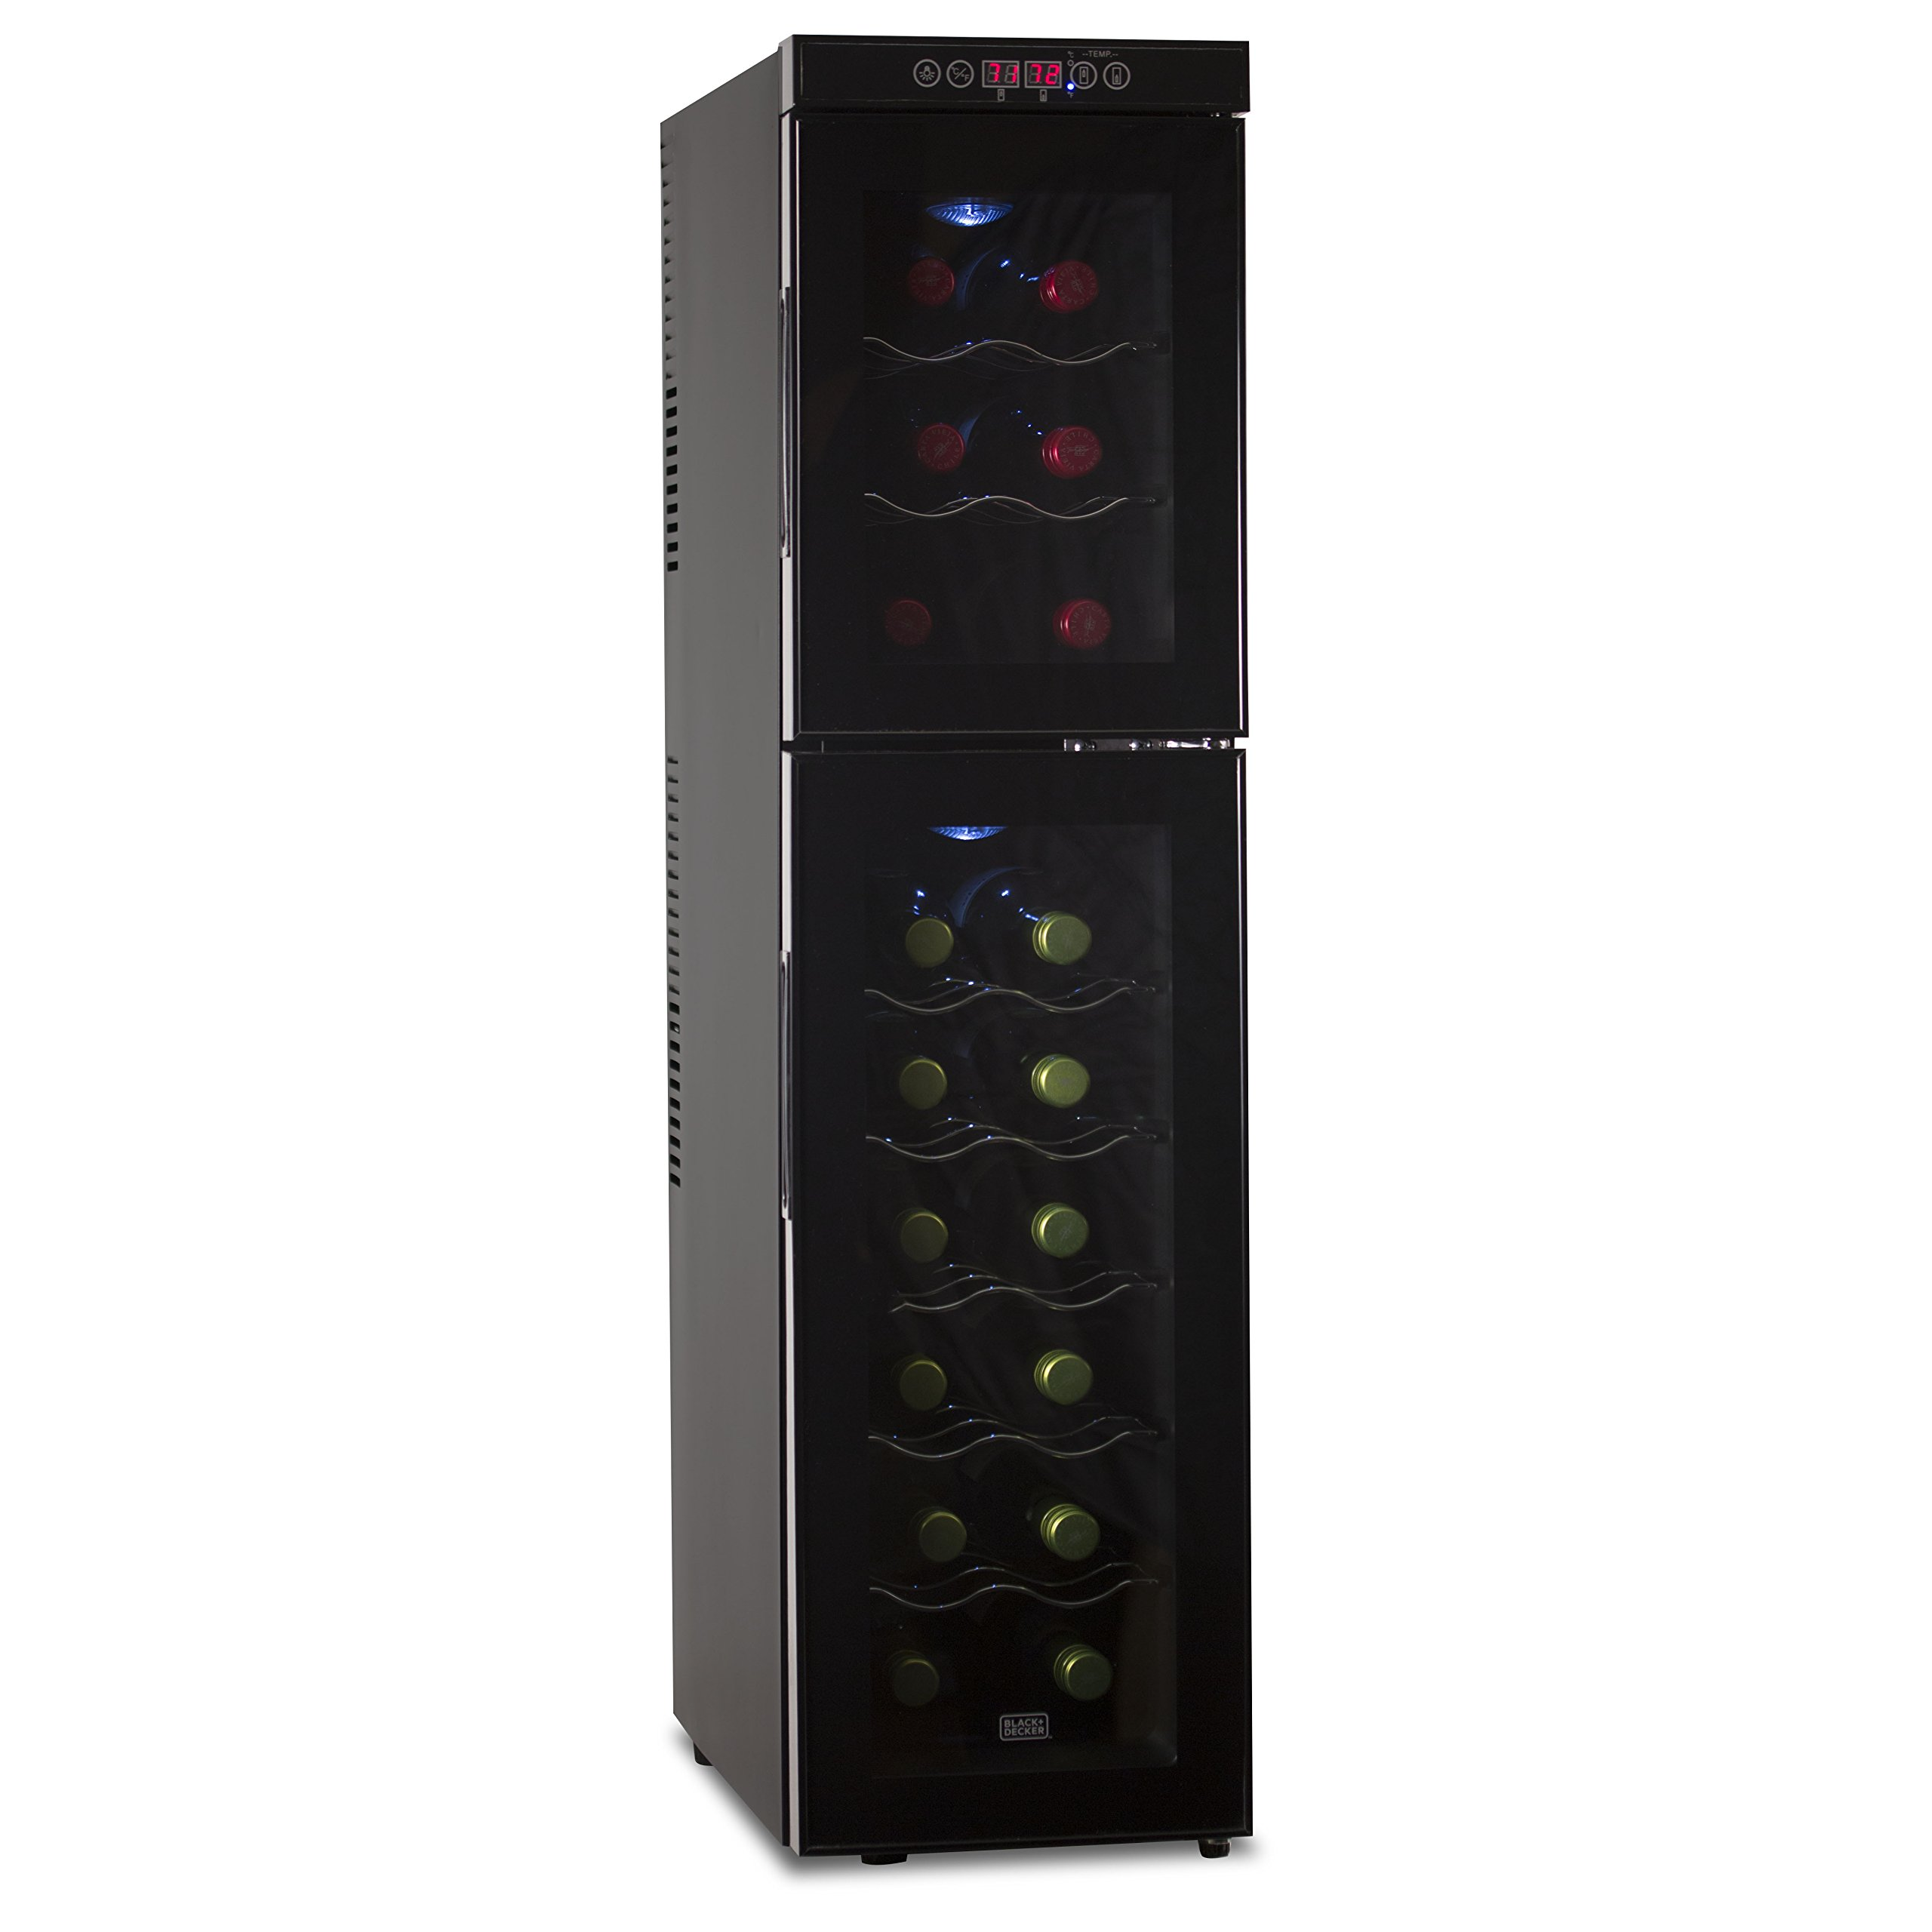 BLACK+DECKER 18 Bottle Capacity Dual Zone Thermoelectric Wine Cellar - Electronic Touch Controls & LED Display - Black Cabinet with UV Glass Door & Interior Light - BWTD18TB